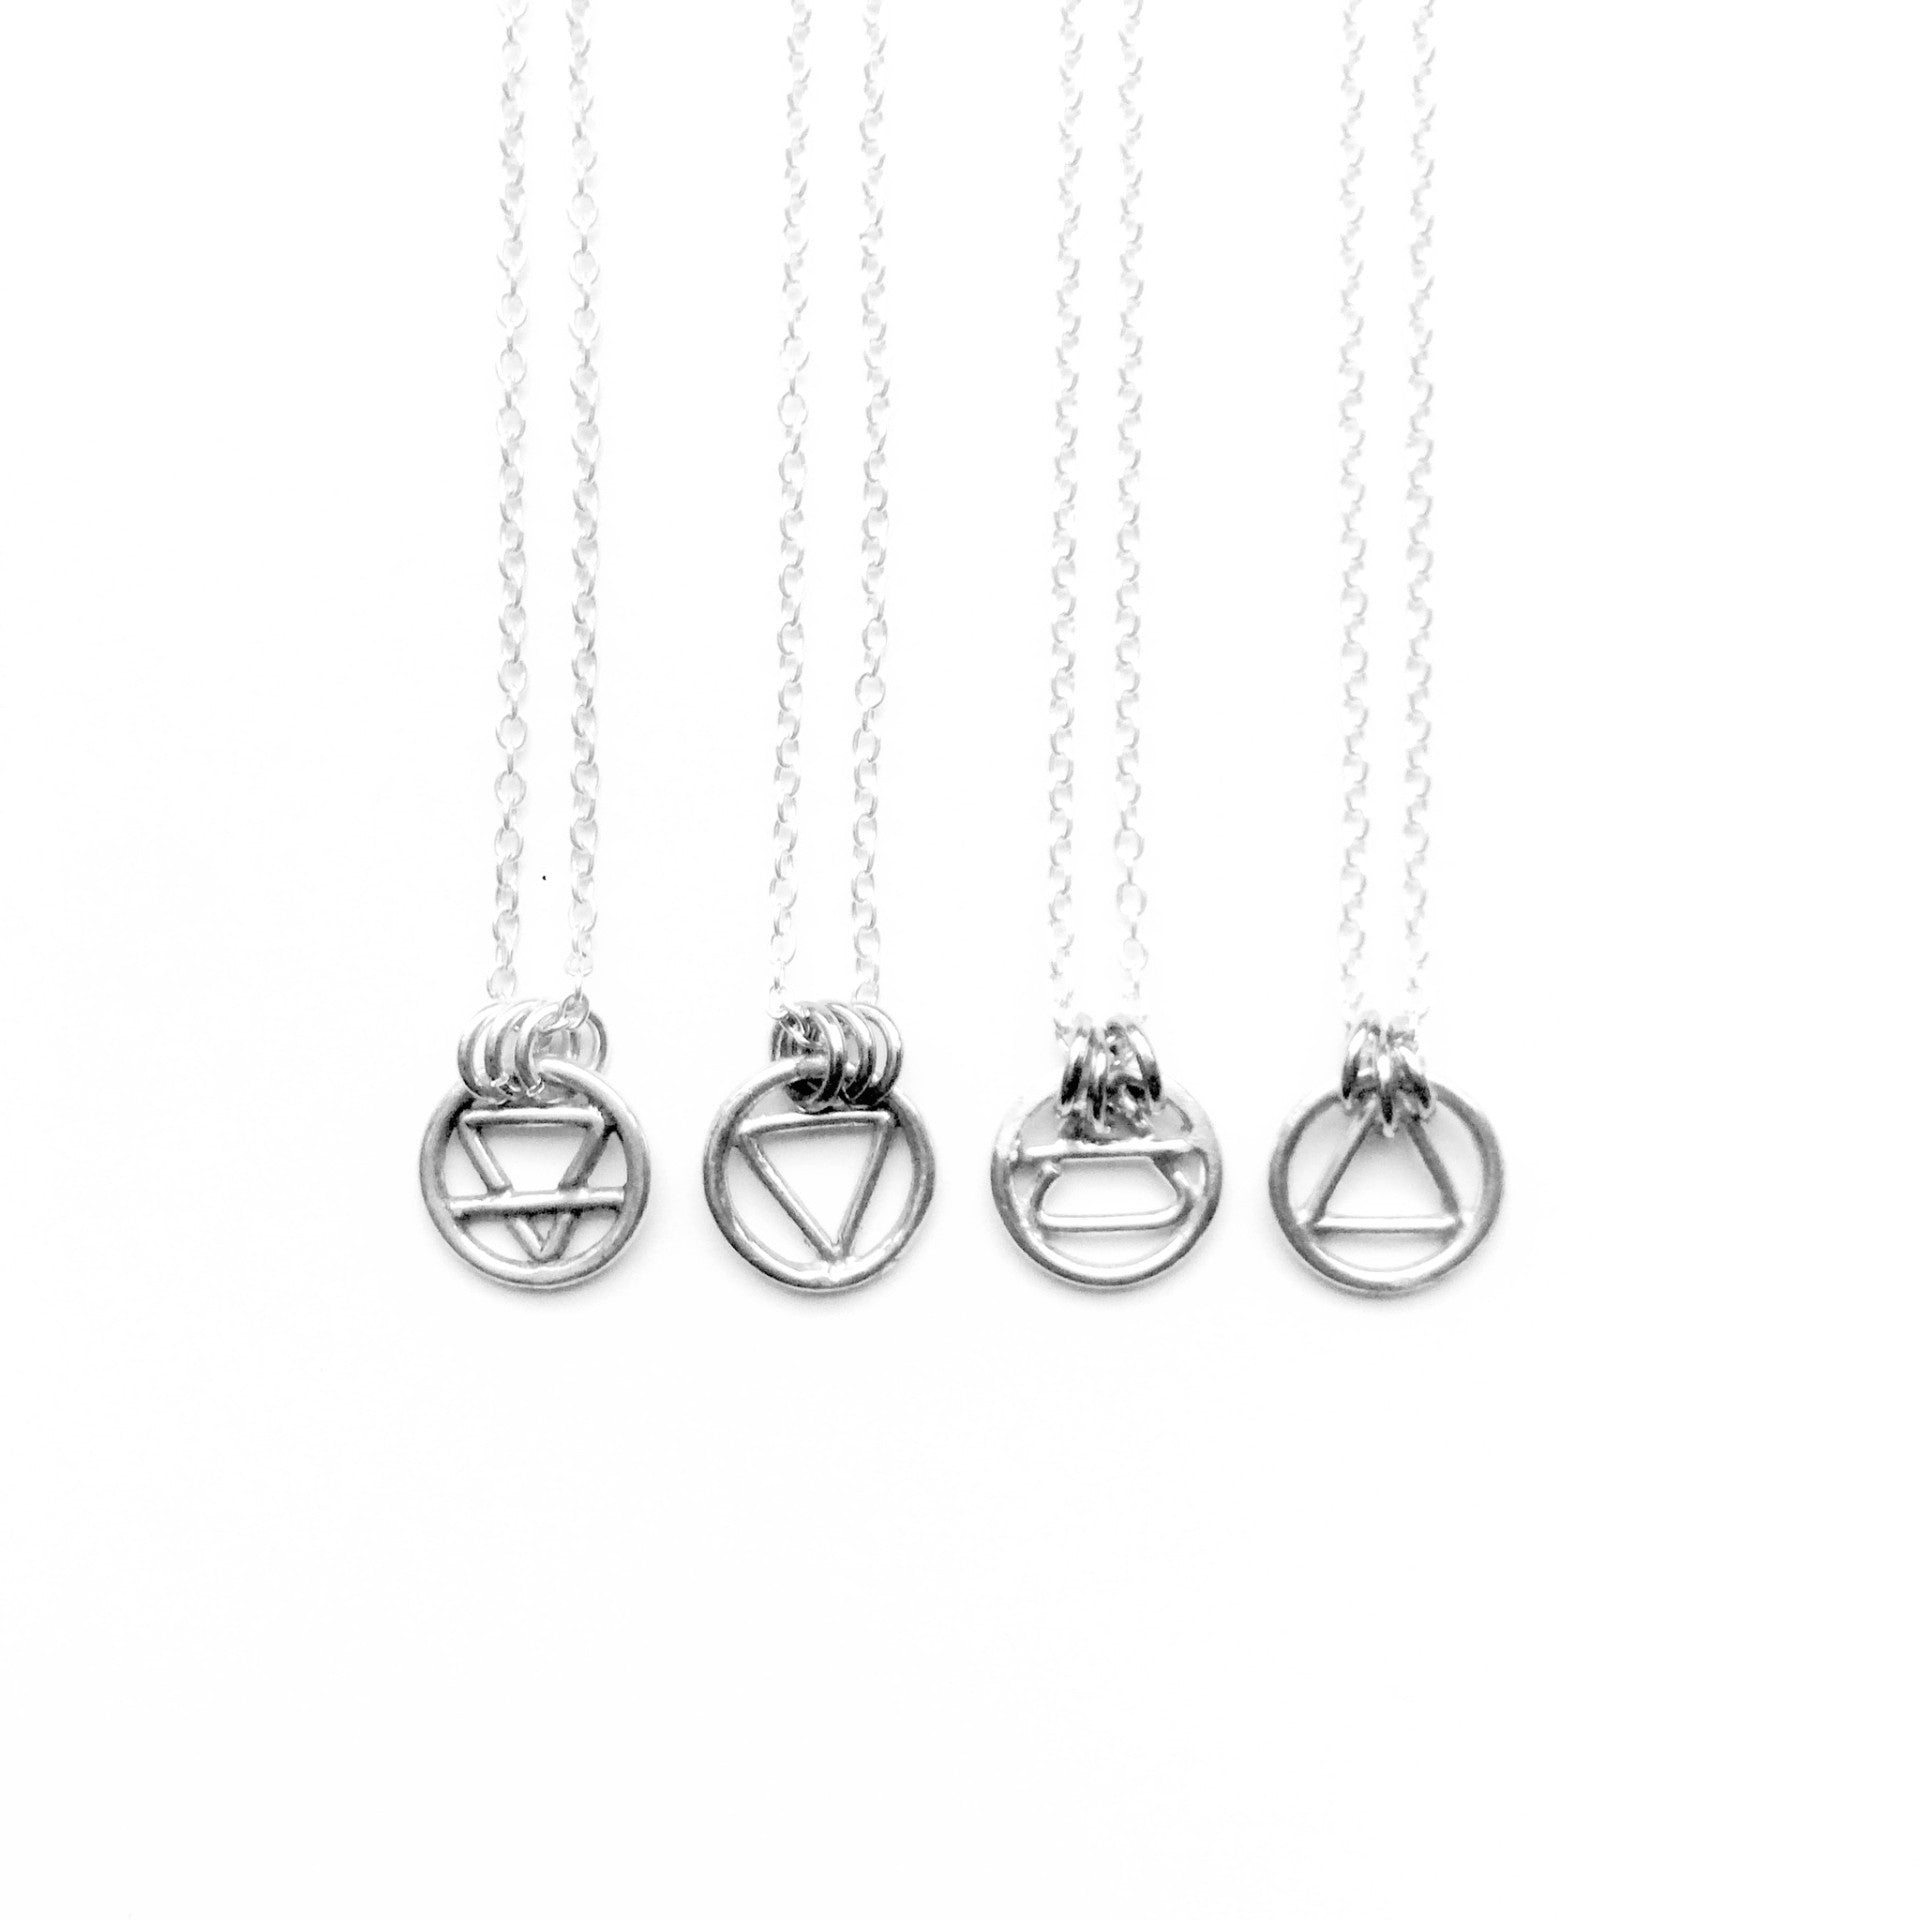 Alchemy Elements Necklaces